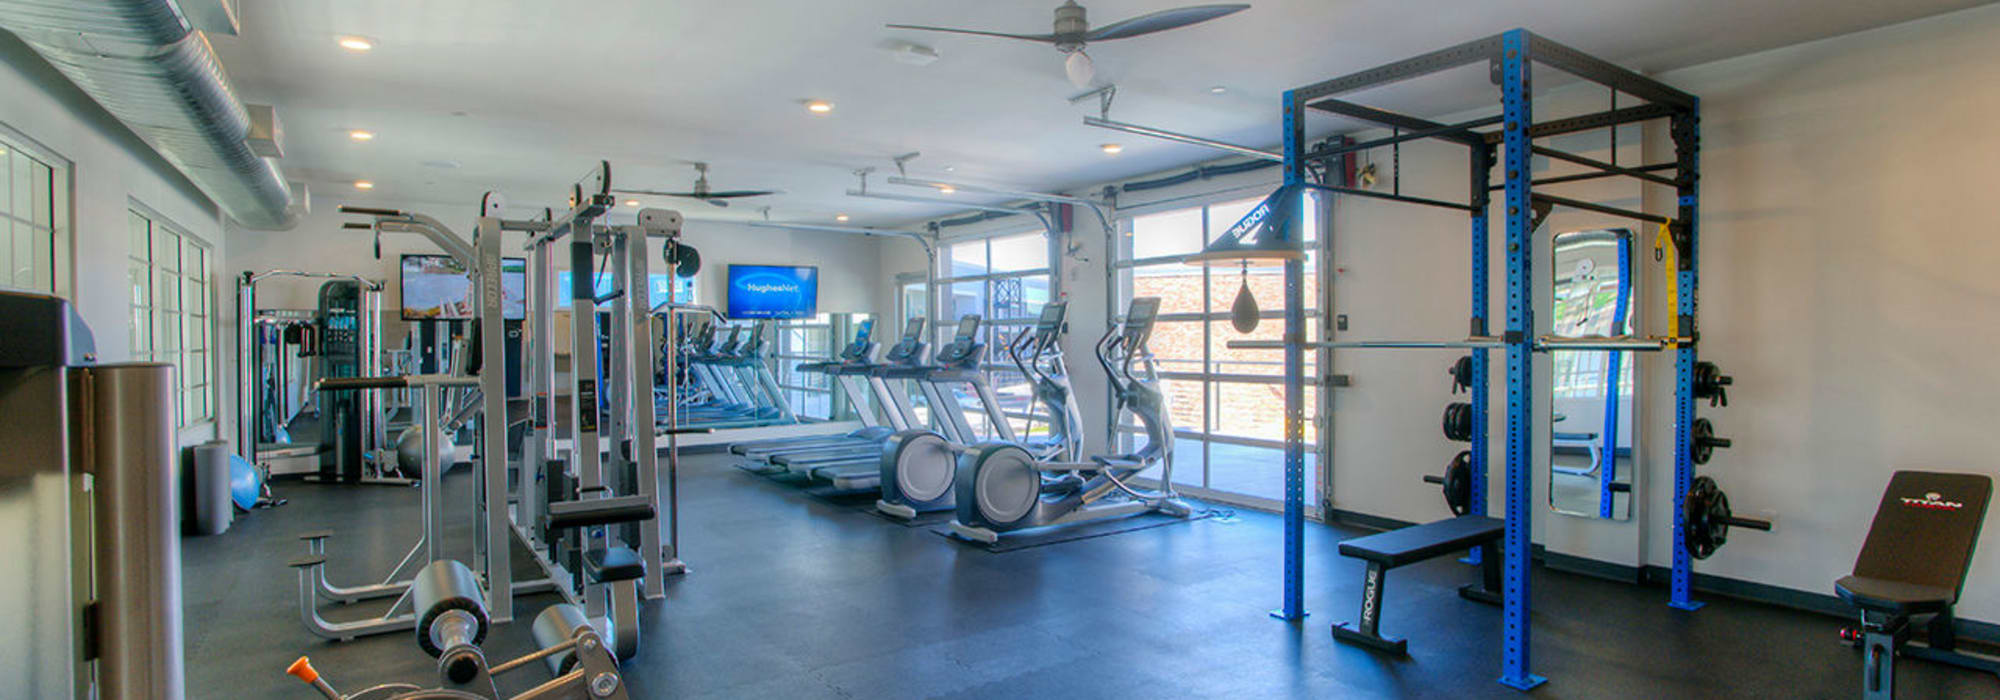 Well-equipped fitness center at District Lofts in Gilbert, Arizona